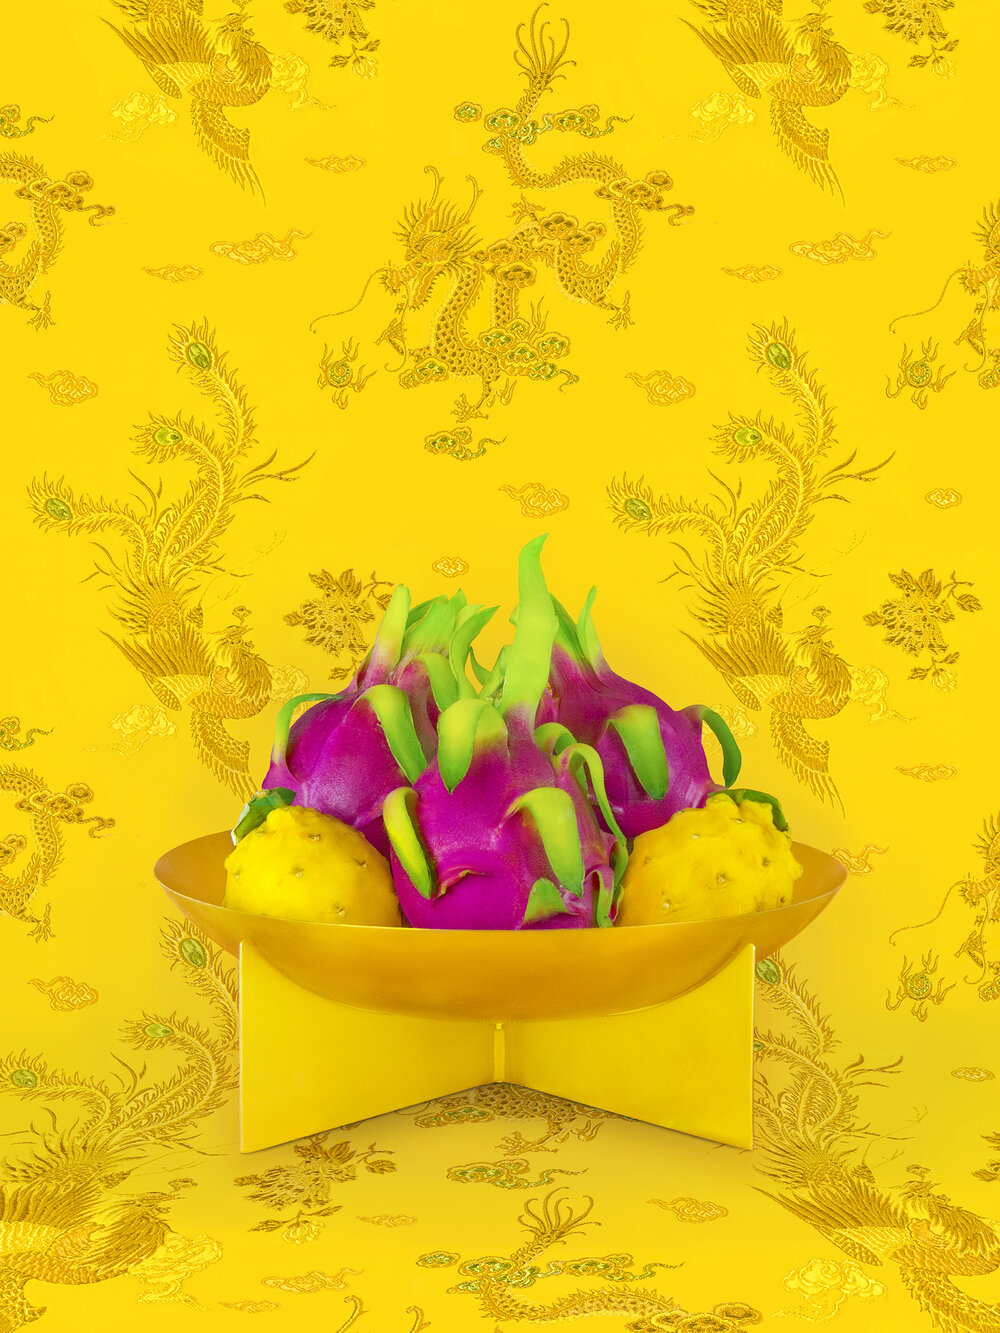 Art by Shellie Zhang - a bowl of pink dragon fruit against a yellow background